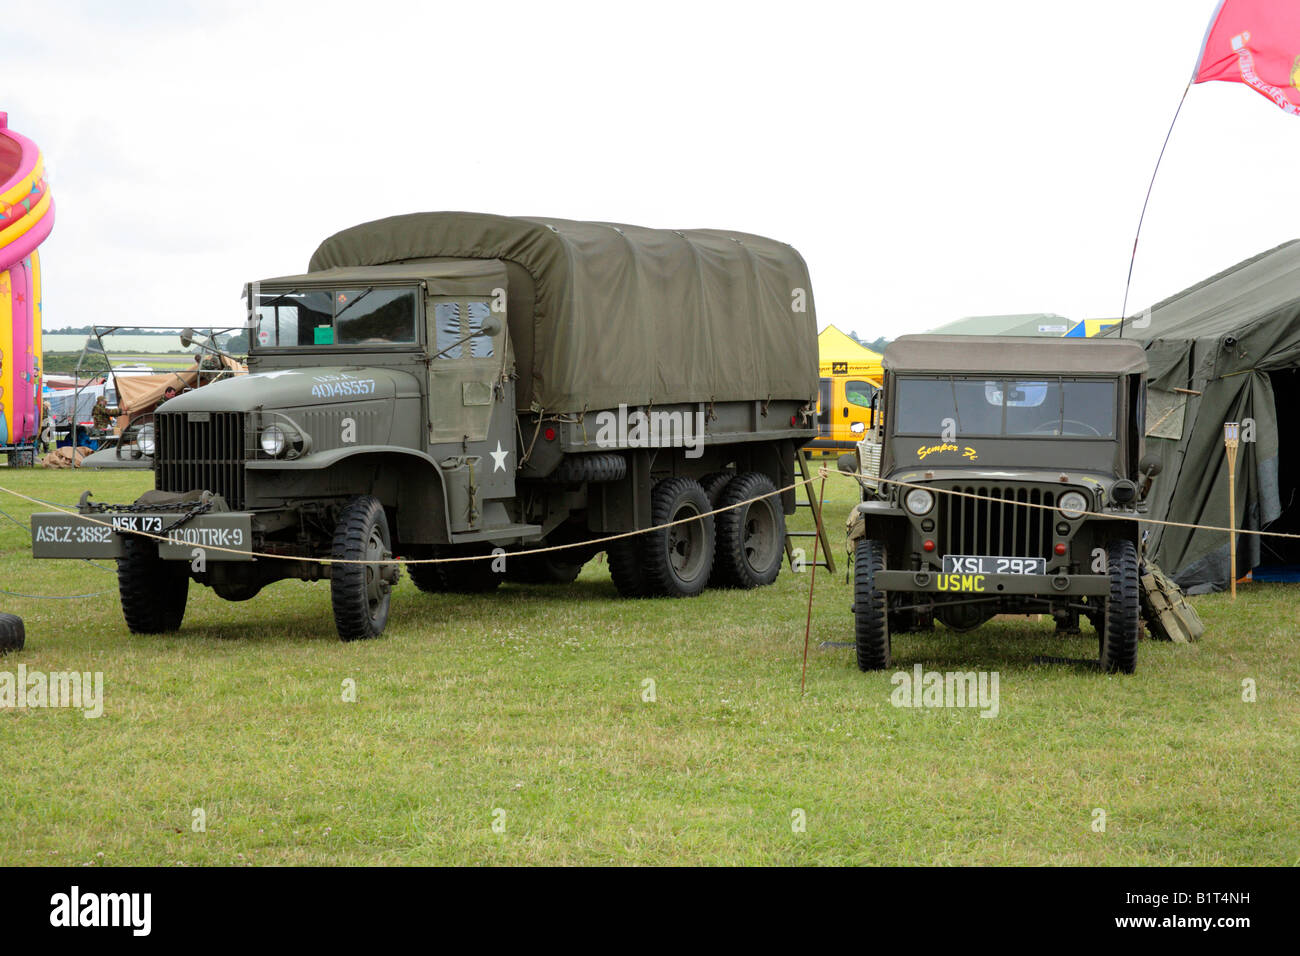 WWII GMC CCKW 353 Cargo 6x6 truck and jeep Stock Photo